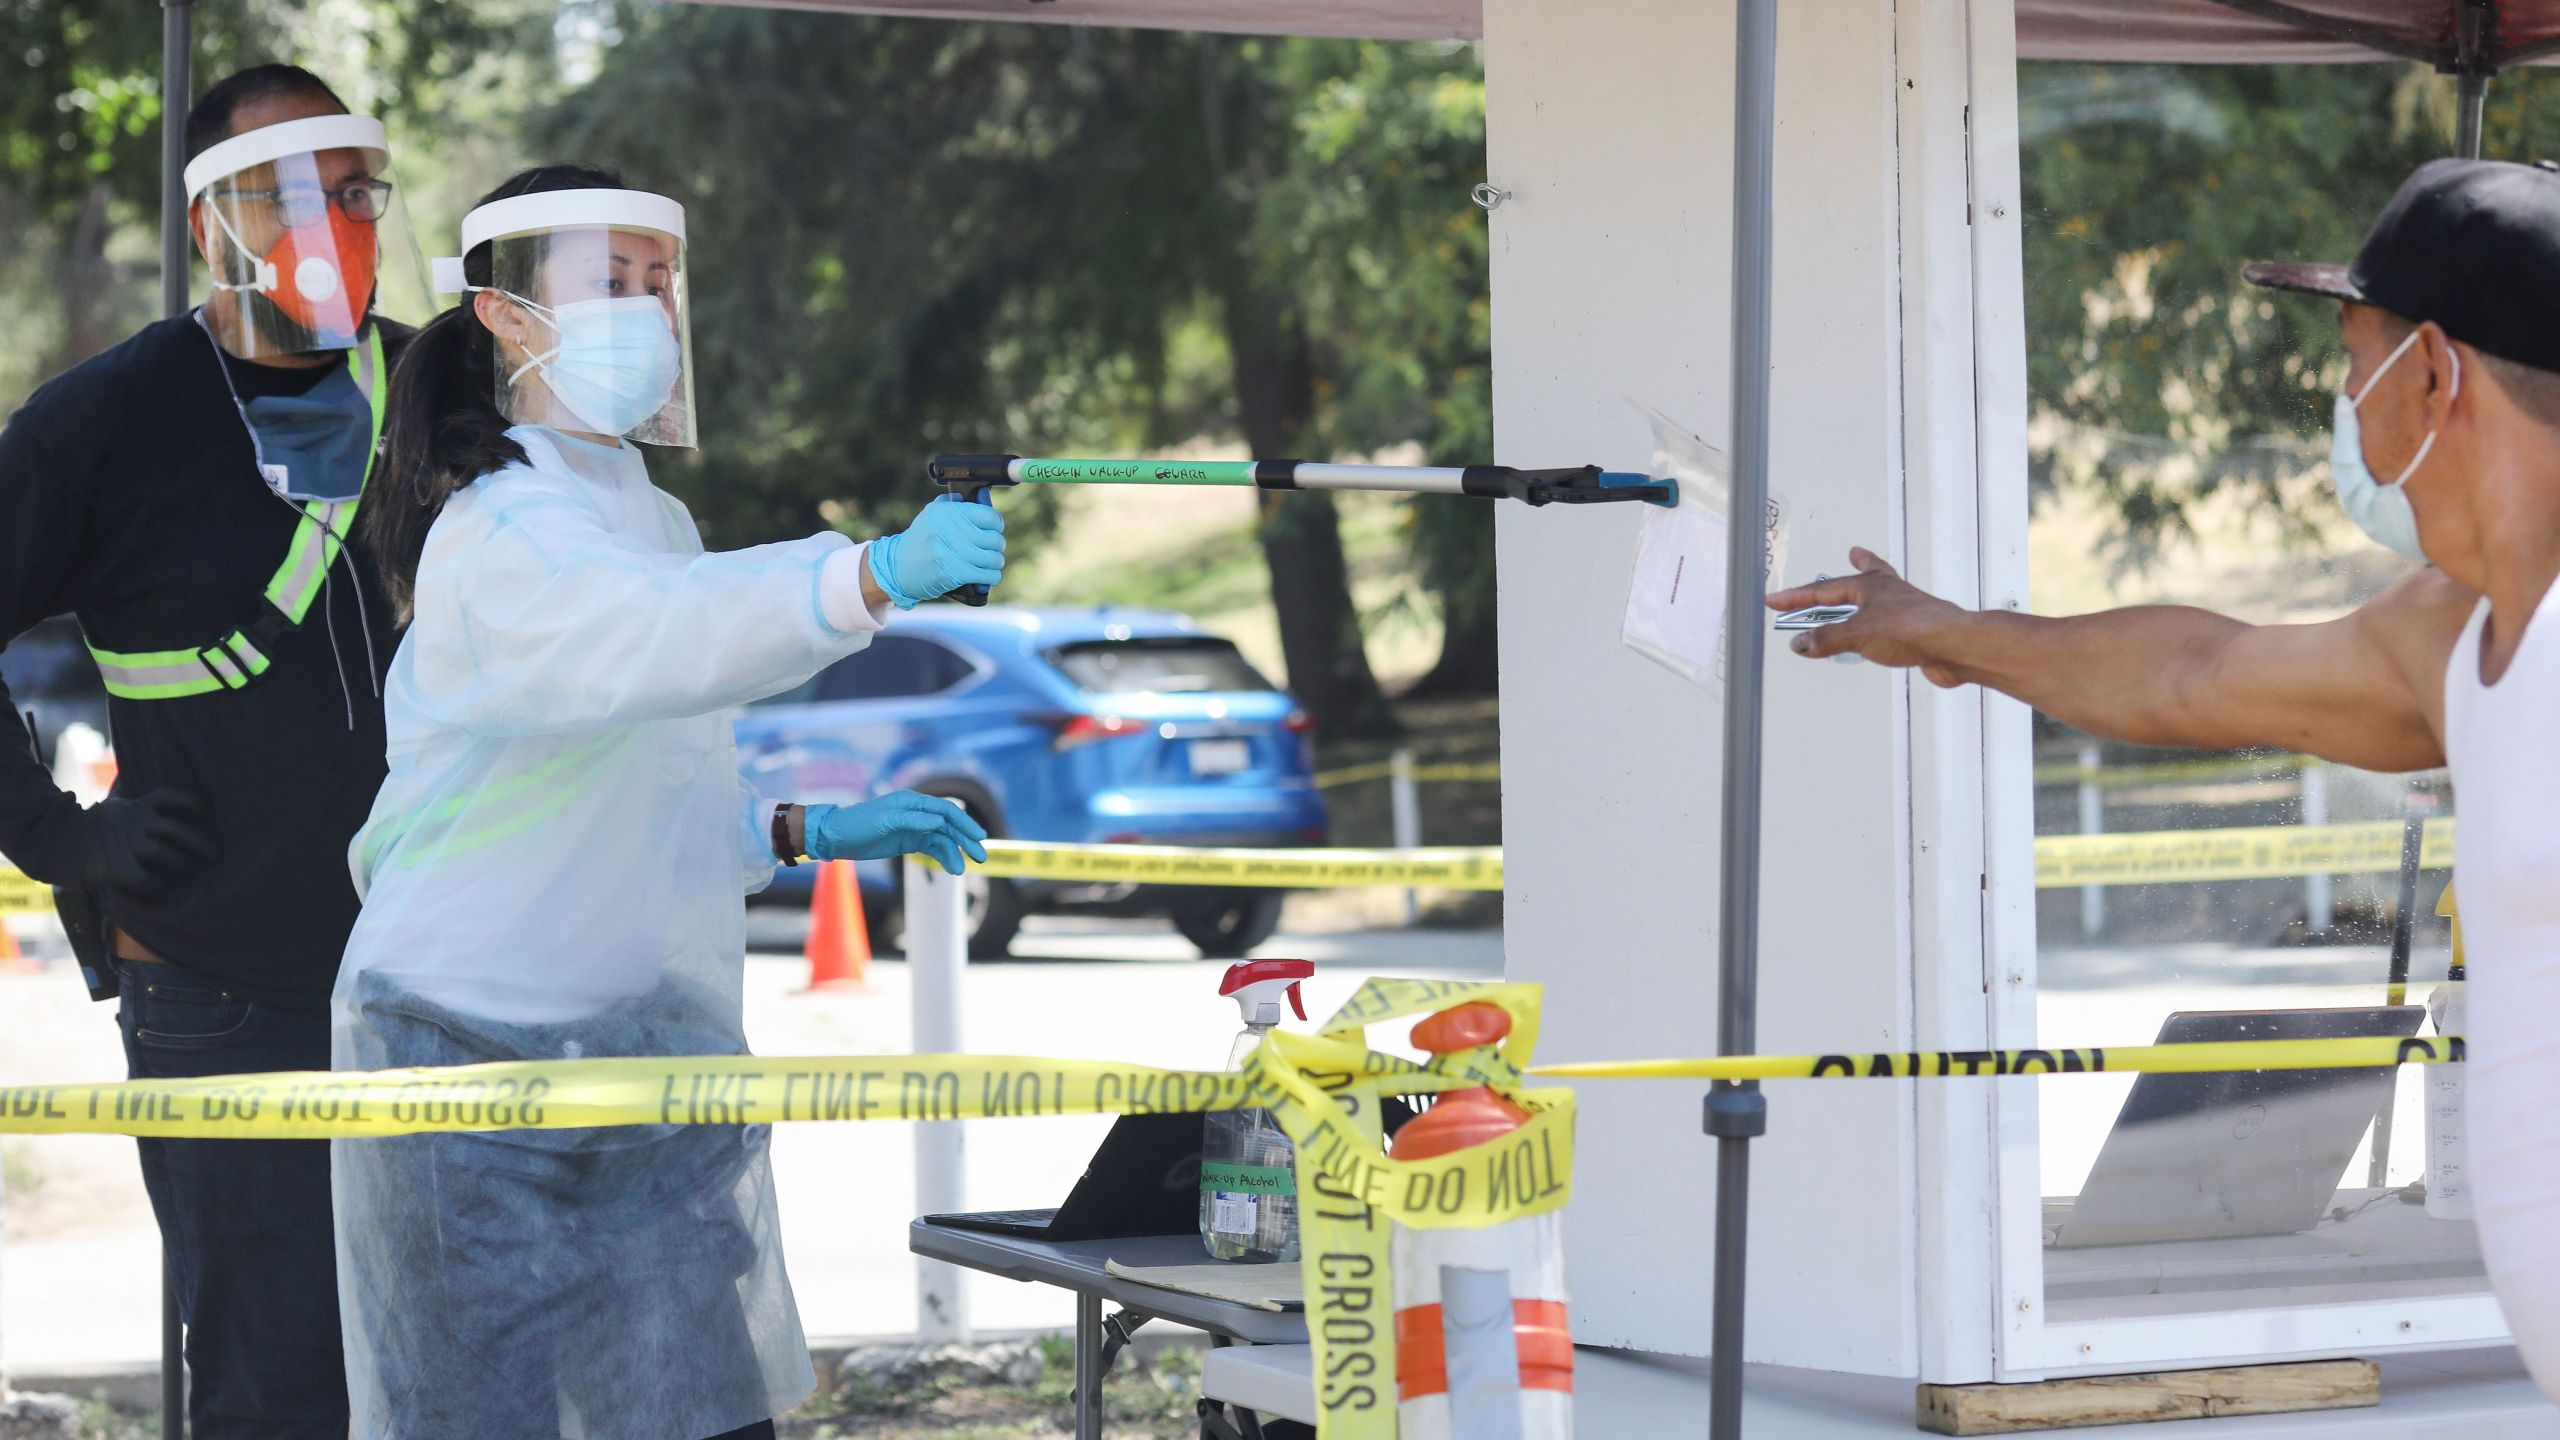 A worker passes a biohazard bag with a self-administered coronavirus test to a man at a testing center at Lincoln Park on July 7, 2020, in Los Angeles. (Mario Tama/Getty Images)